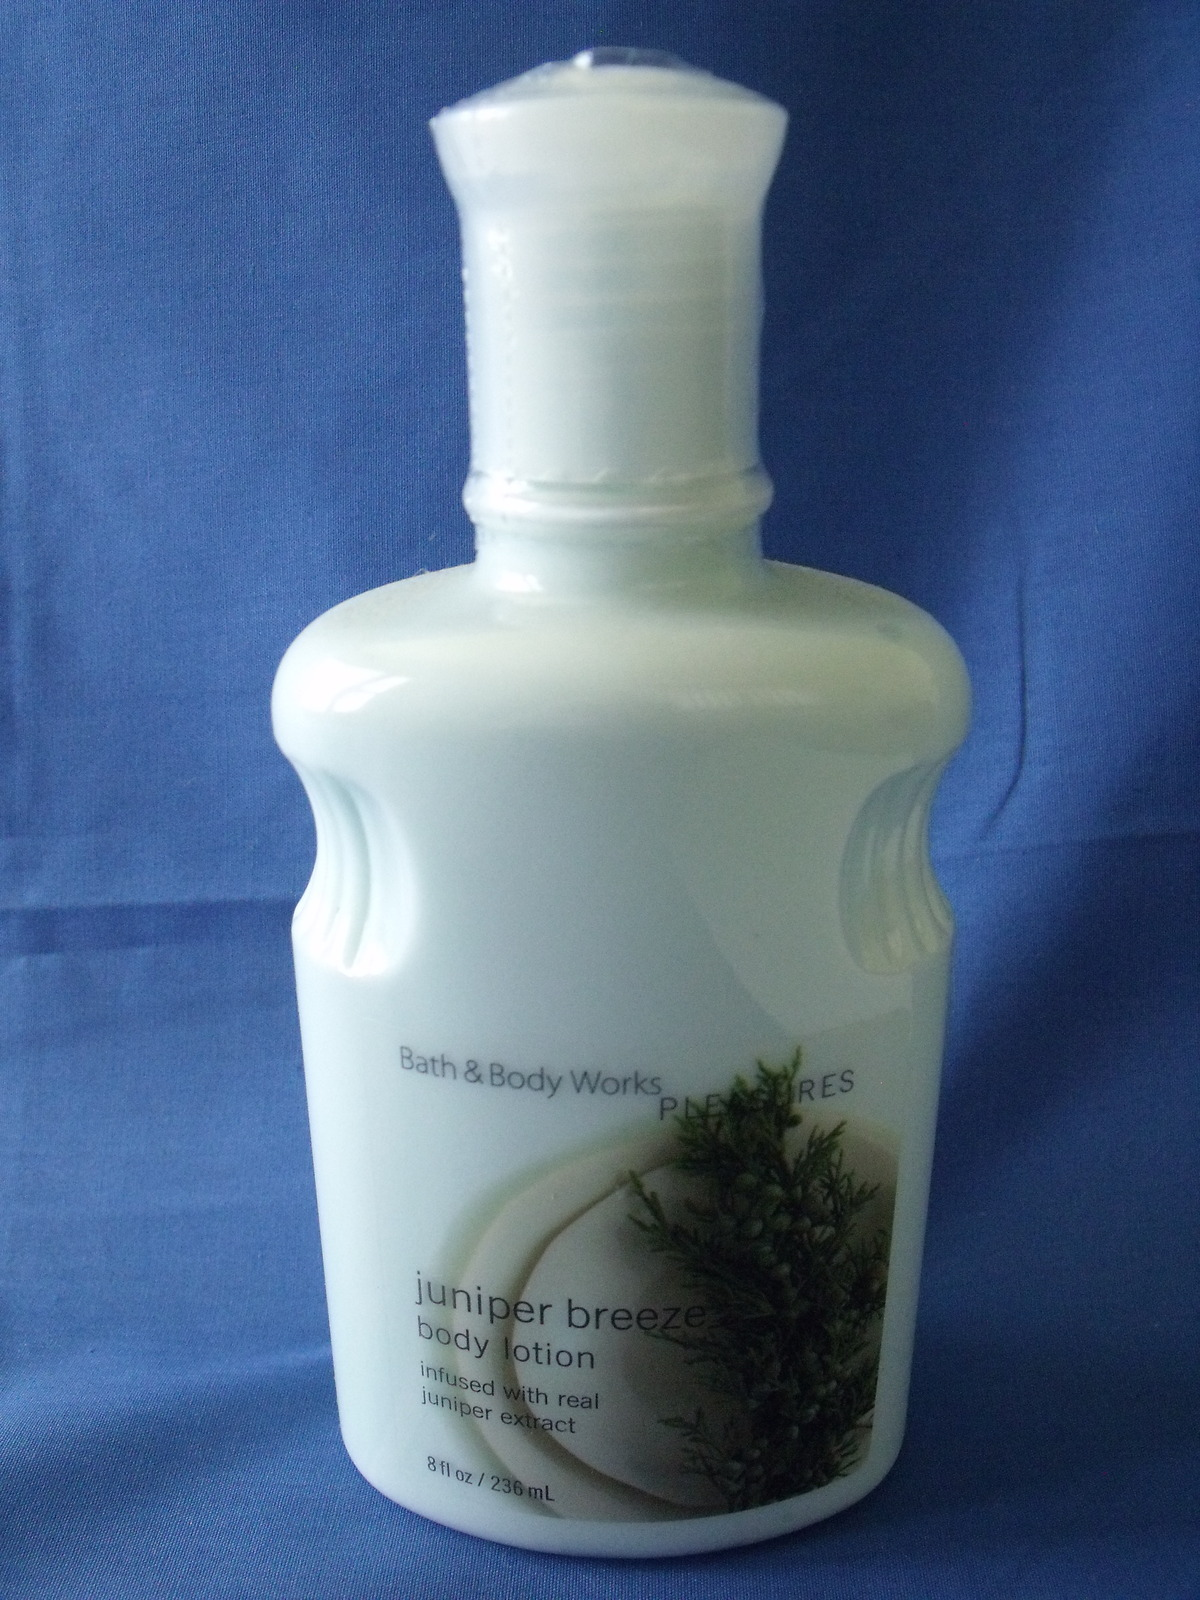 Bath and Body Works New Juniper Breeze Body Lotion 8 oz